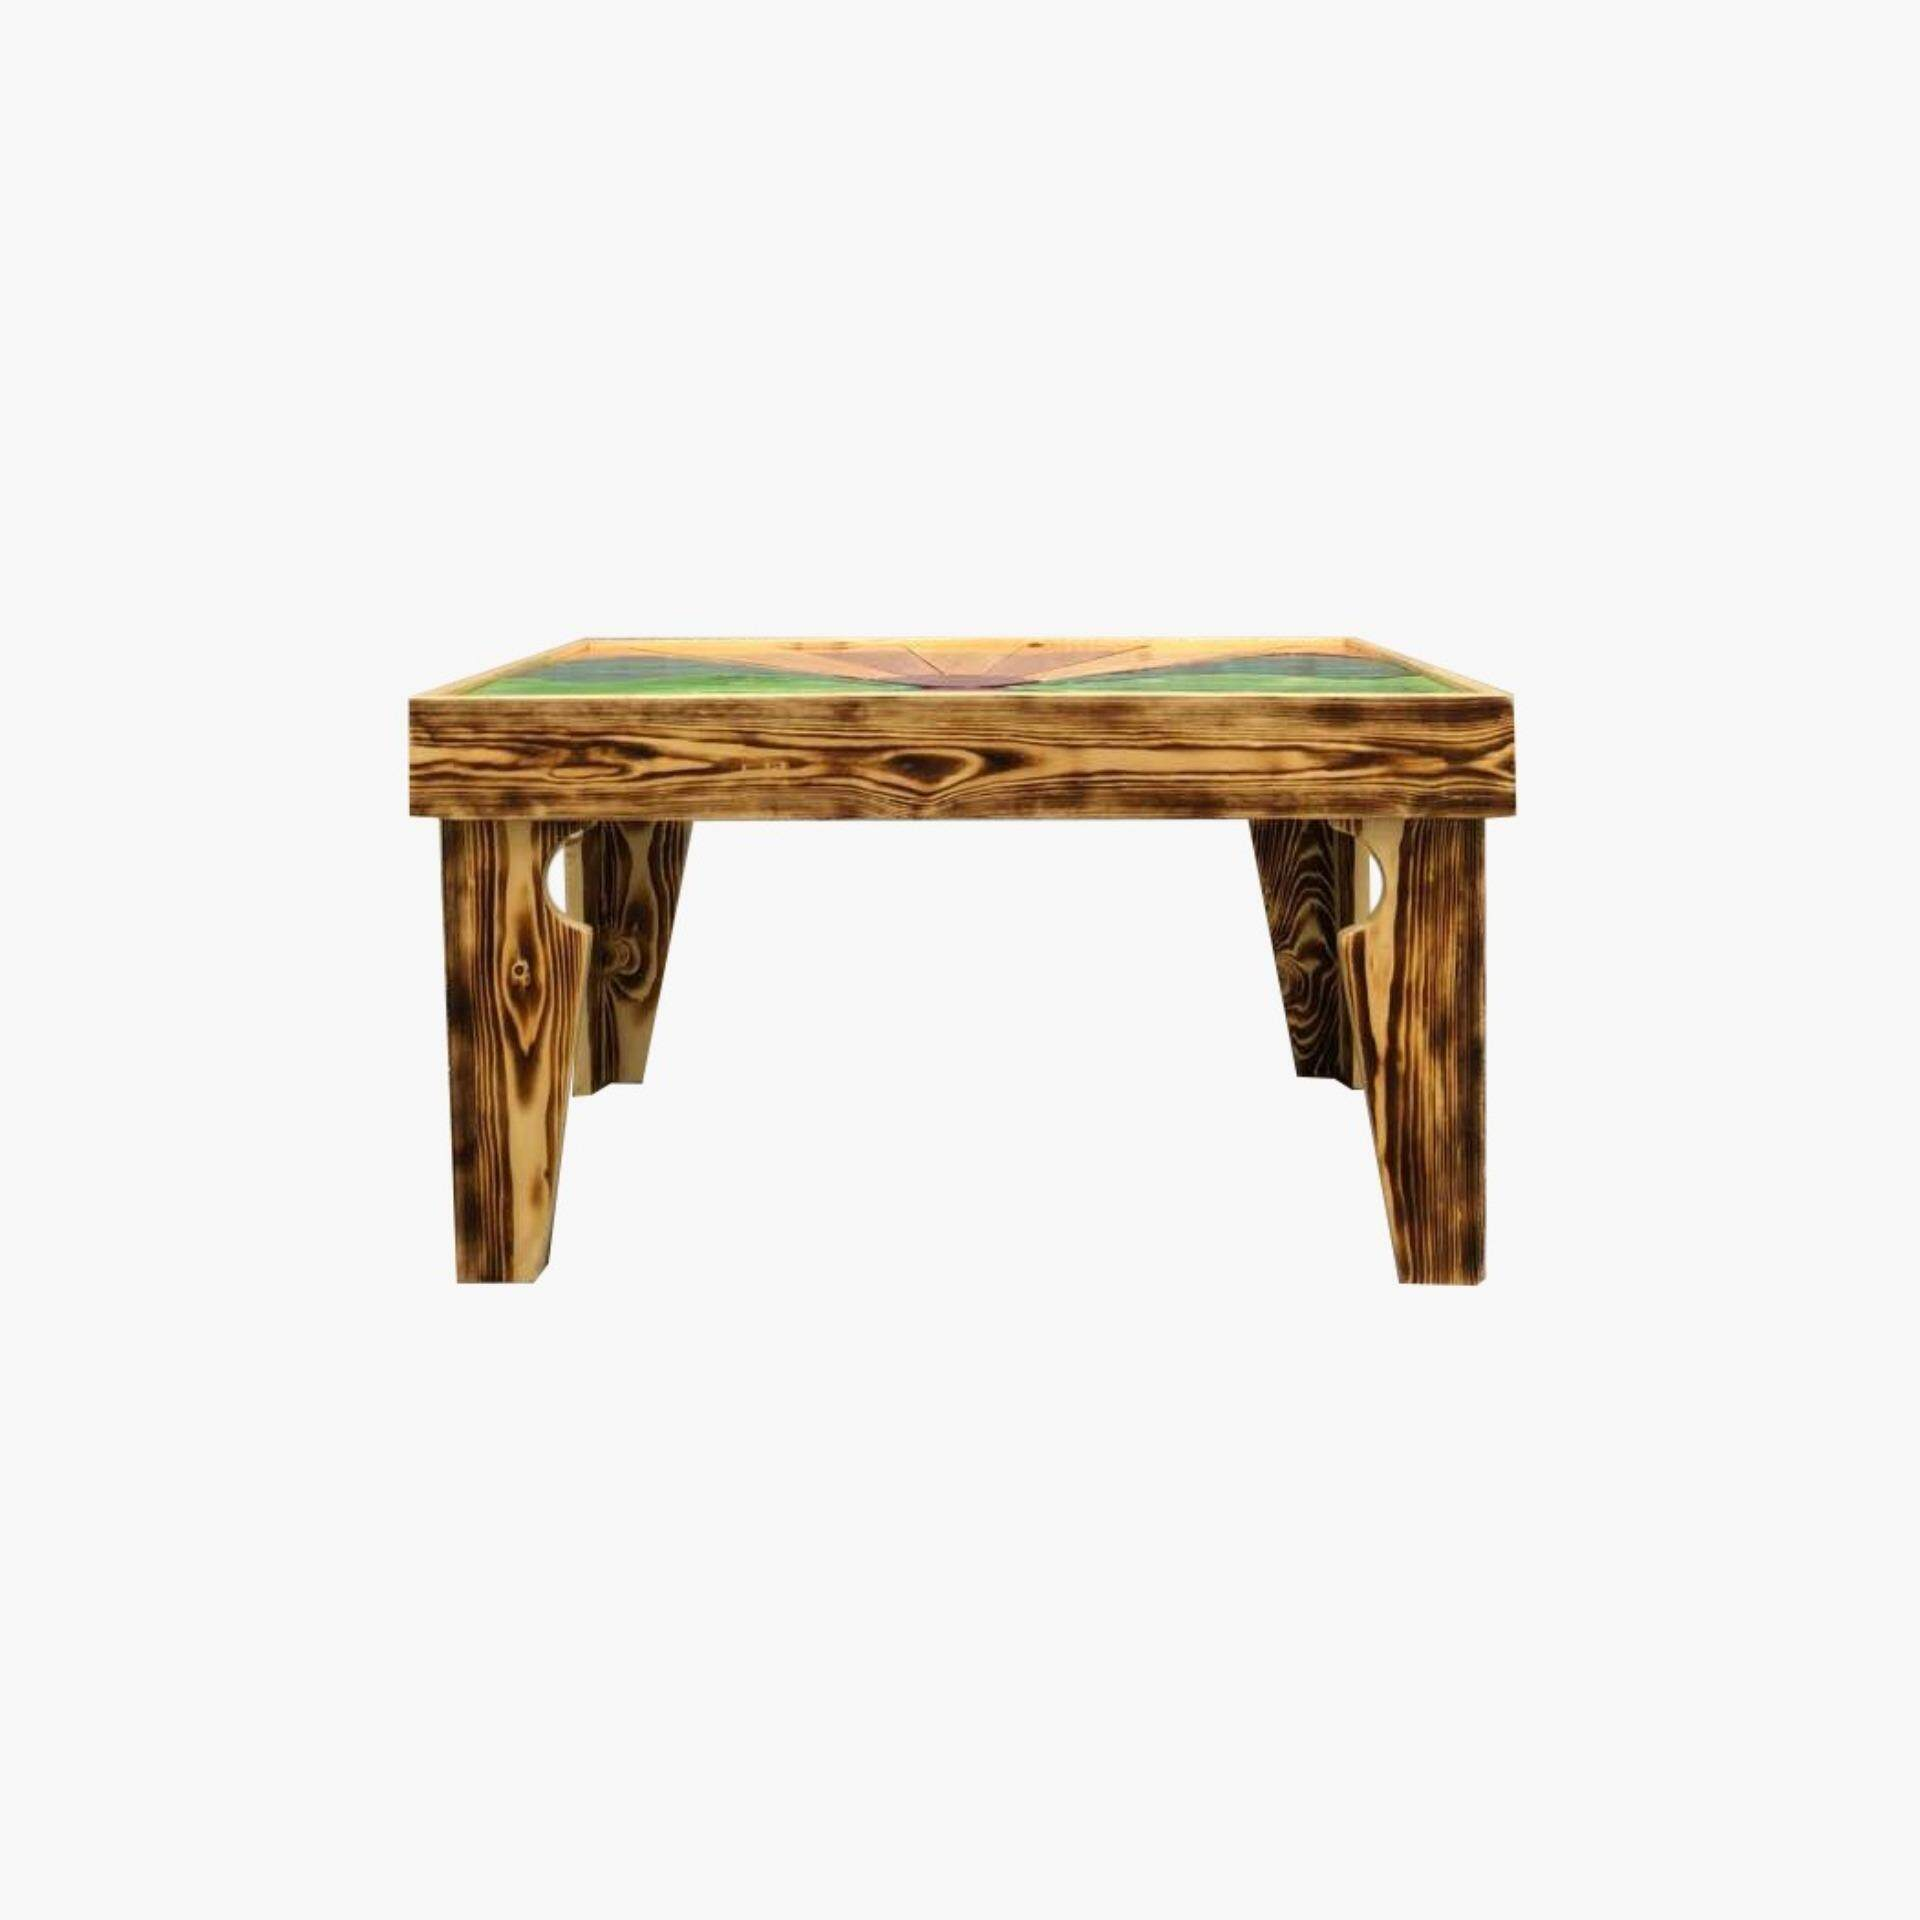 Ladubee Pine Wood Coffee Table (Shoji Forest) (3ft x 2ft x 1.5ft)